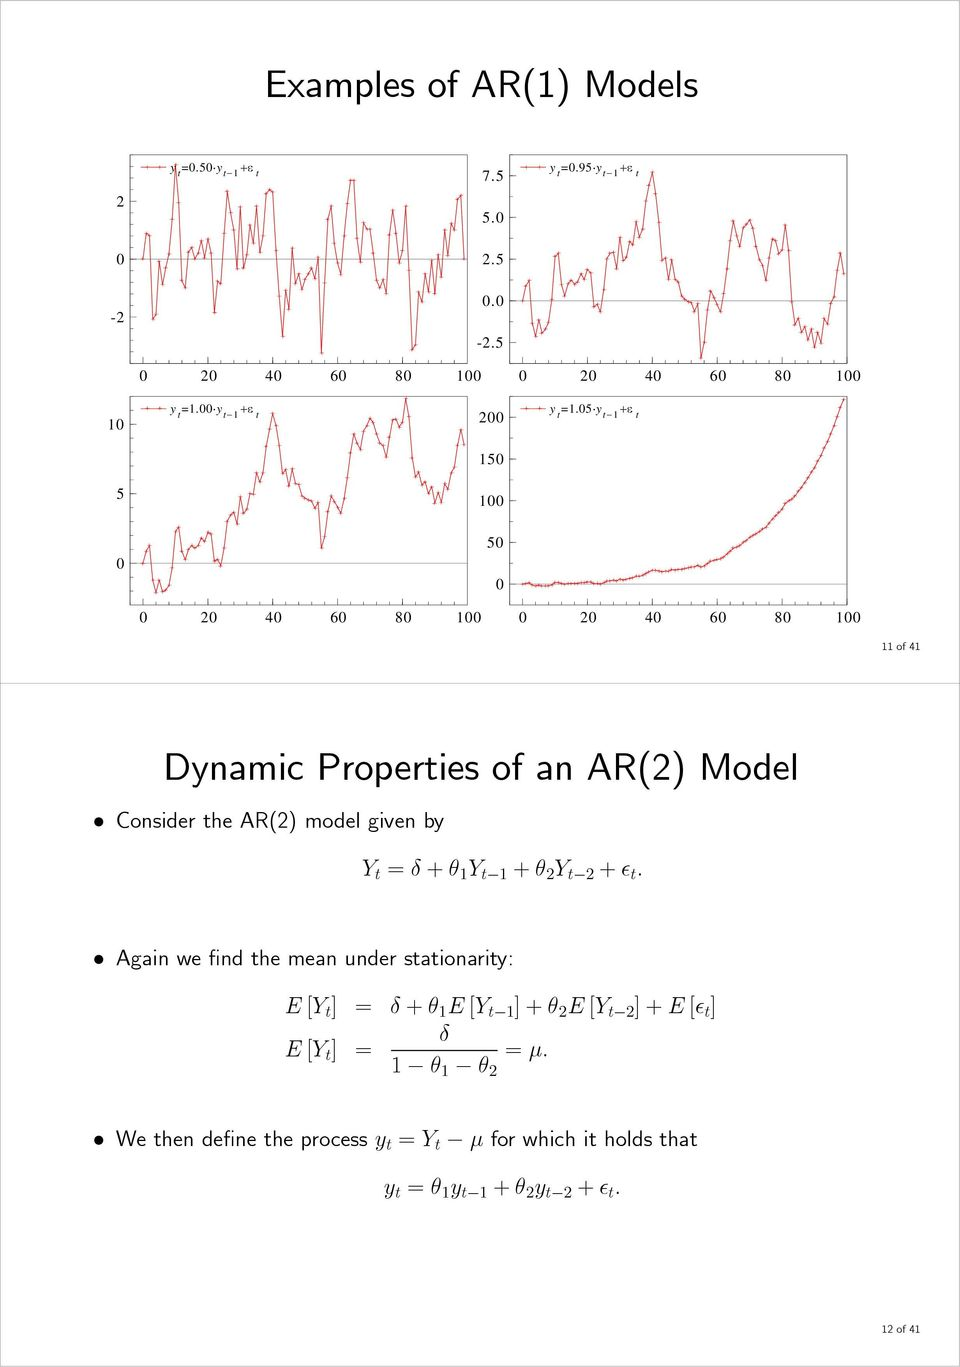 5 y t +ε t 5 5 5 2 4 6 8 2 4 6 8 of 4 Dynamic Properties of an AR(2) Model Consider the AR(2) model given by Y t = δ +